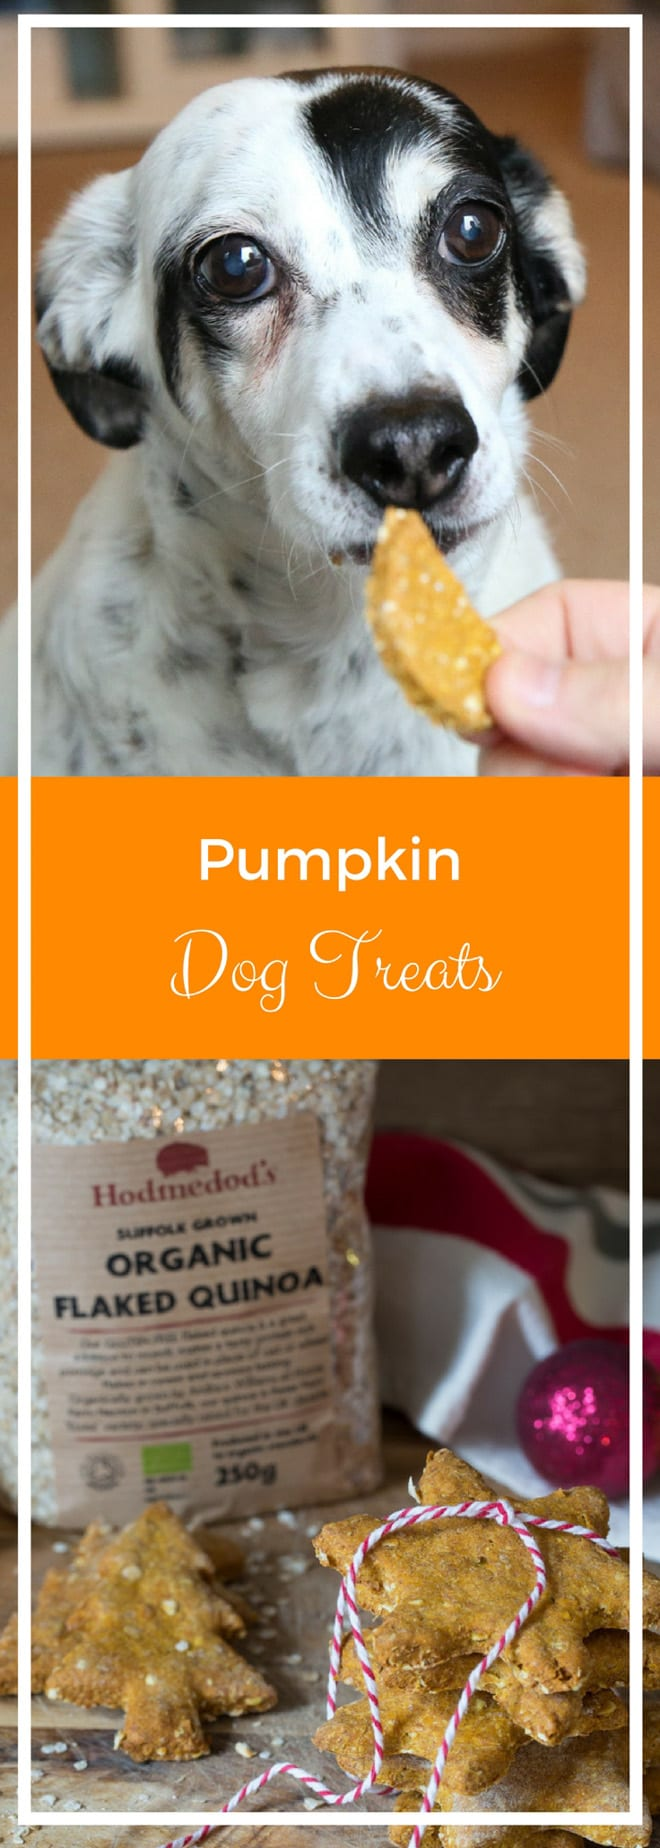 Pumpkin Dog Treats - natural ingredients that your pup will LOVE! thecookandhim.com